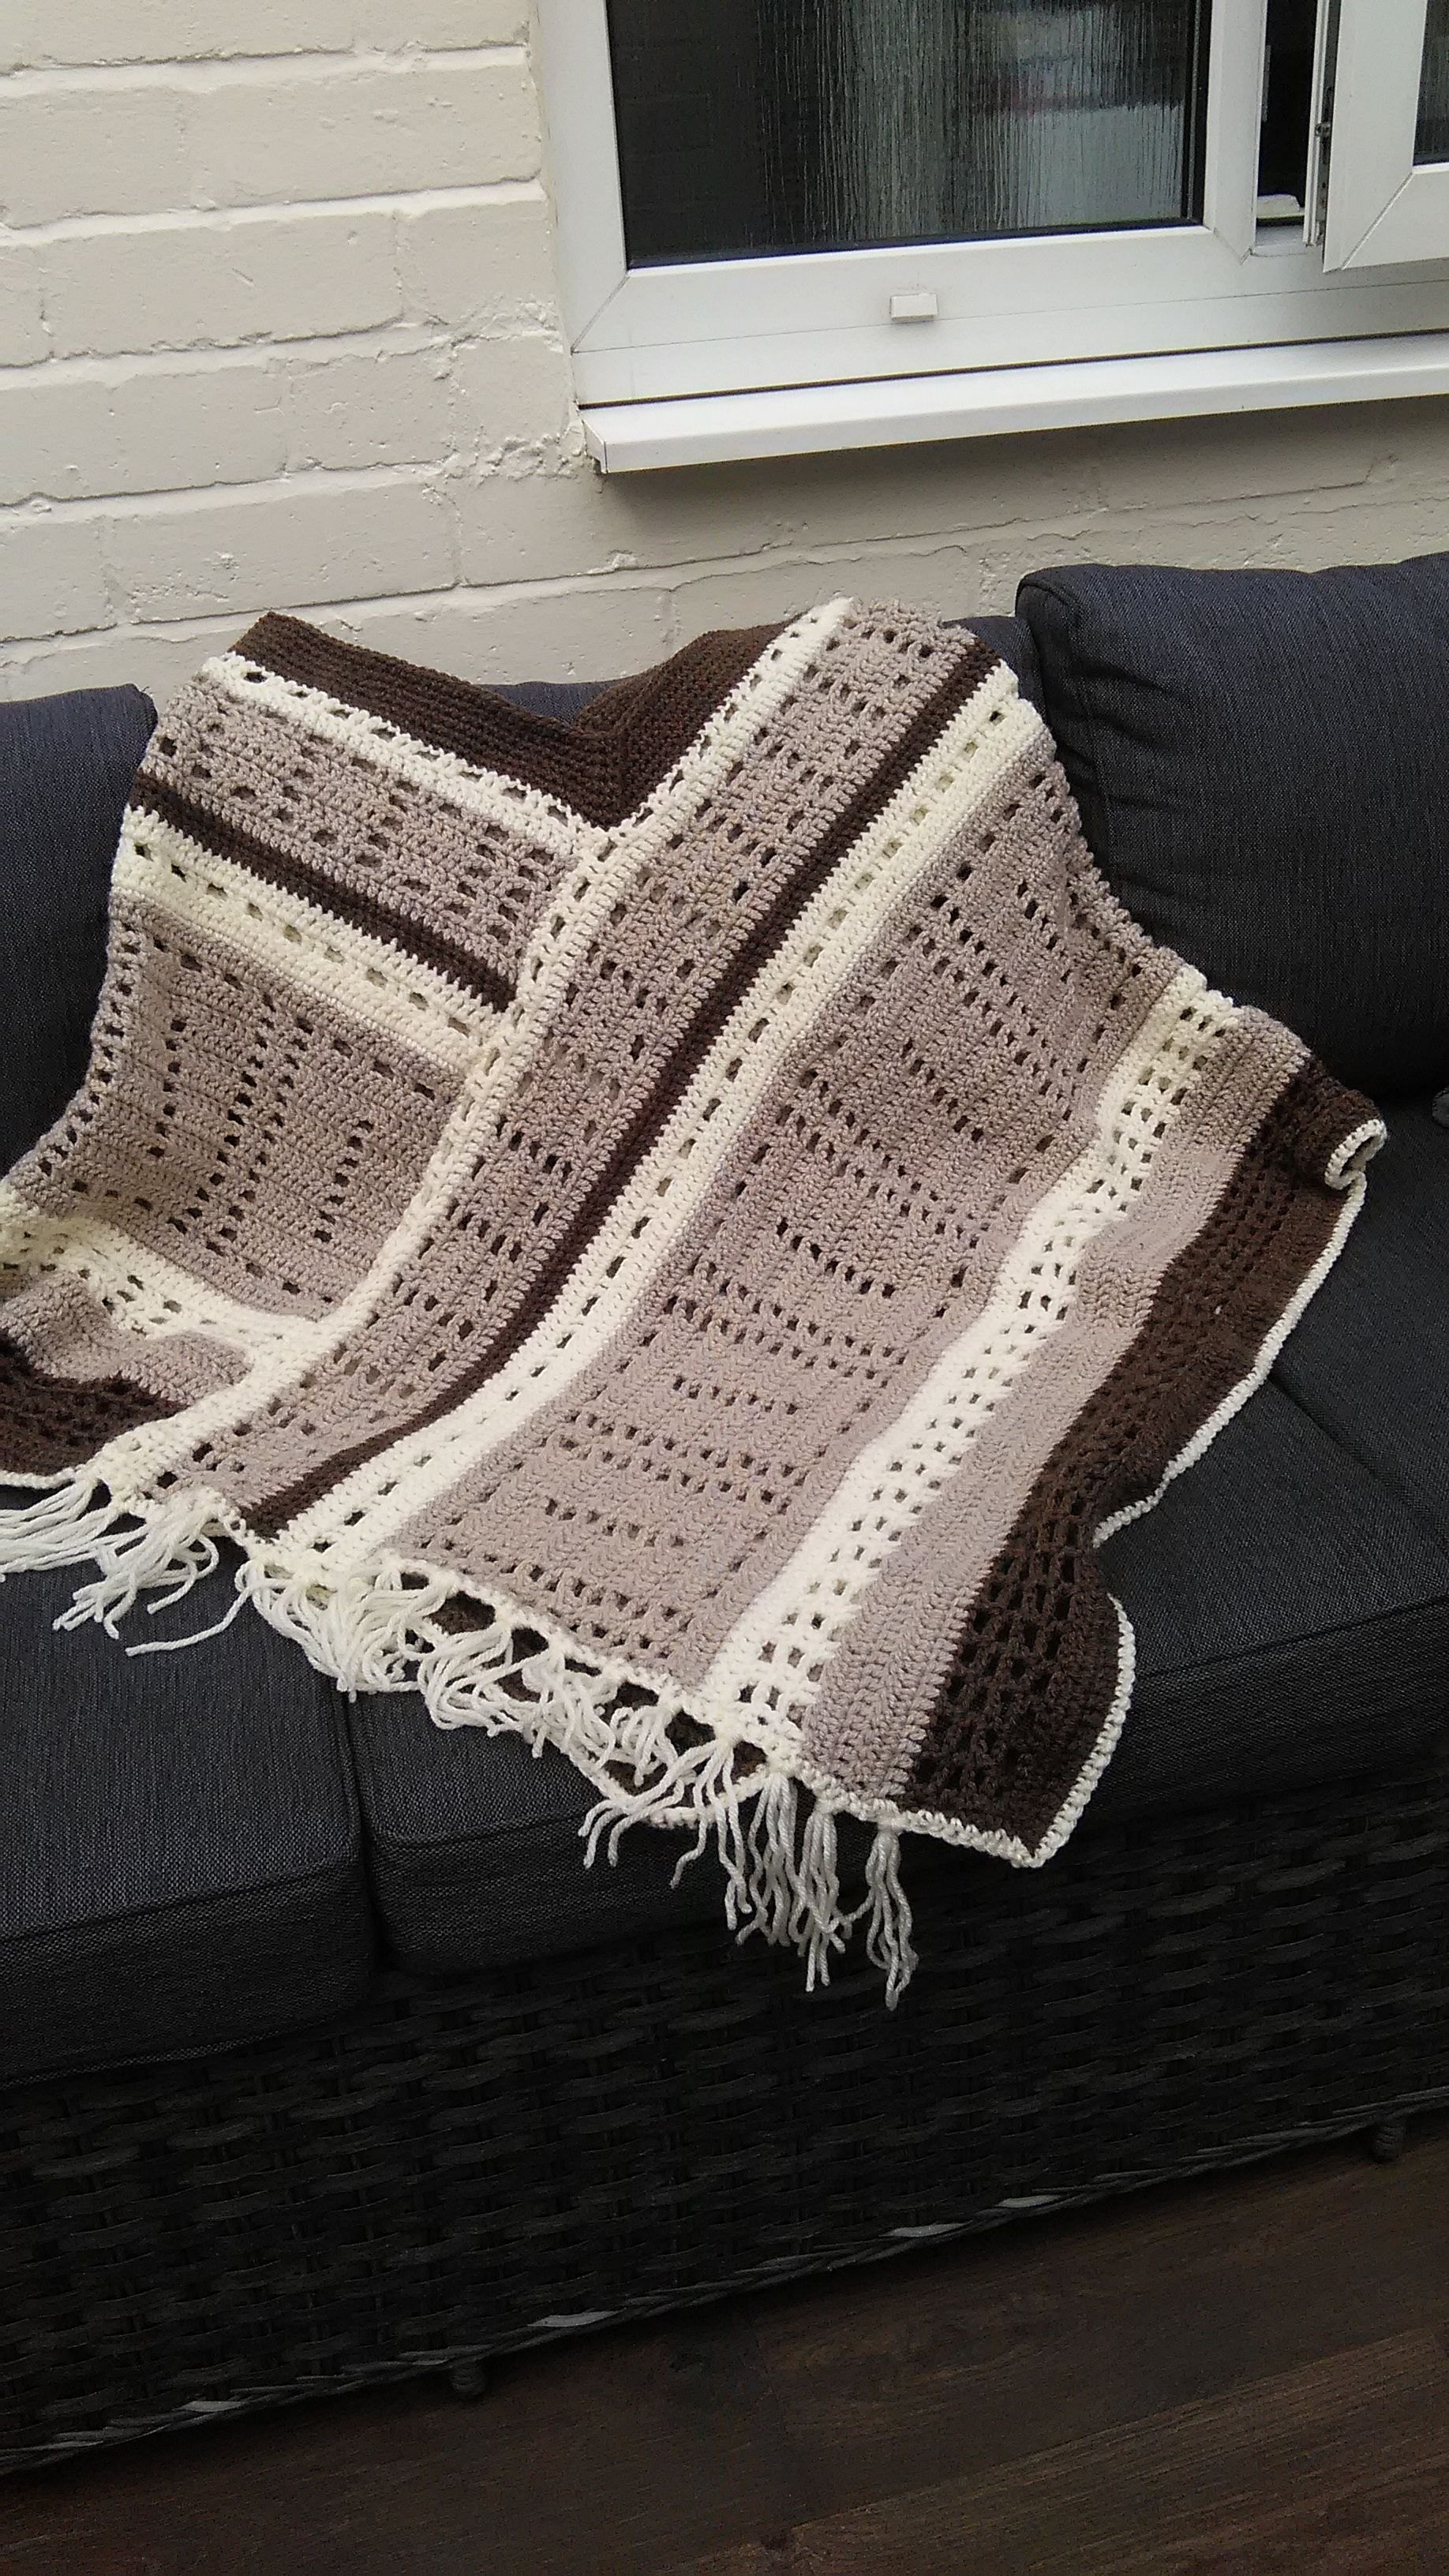 a79536ccc789 finished this crocheted poncho took me 5 attempts to work out the pattern  as it was